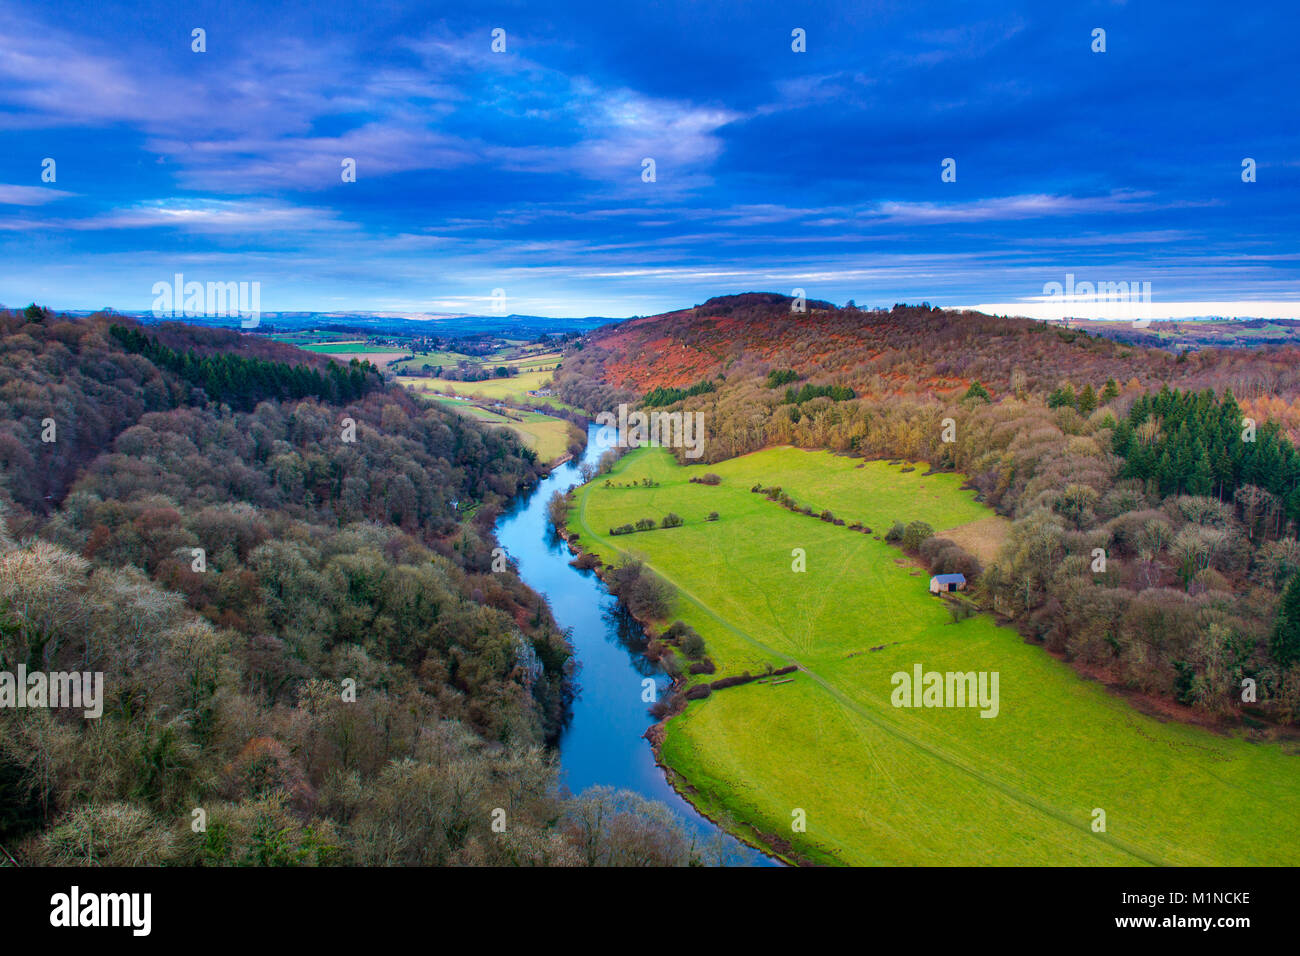 view over river wye coppets hill from Symonds Yat - Stock Image